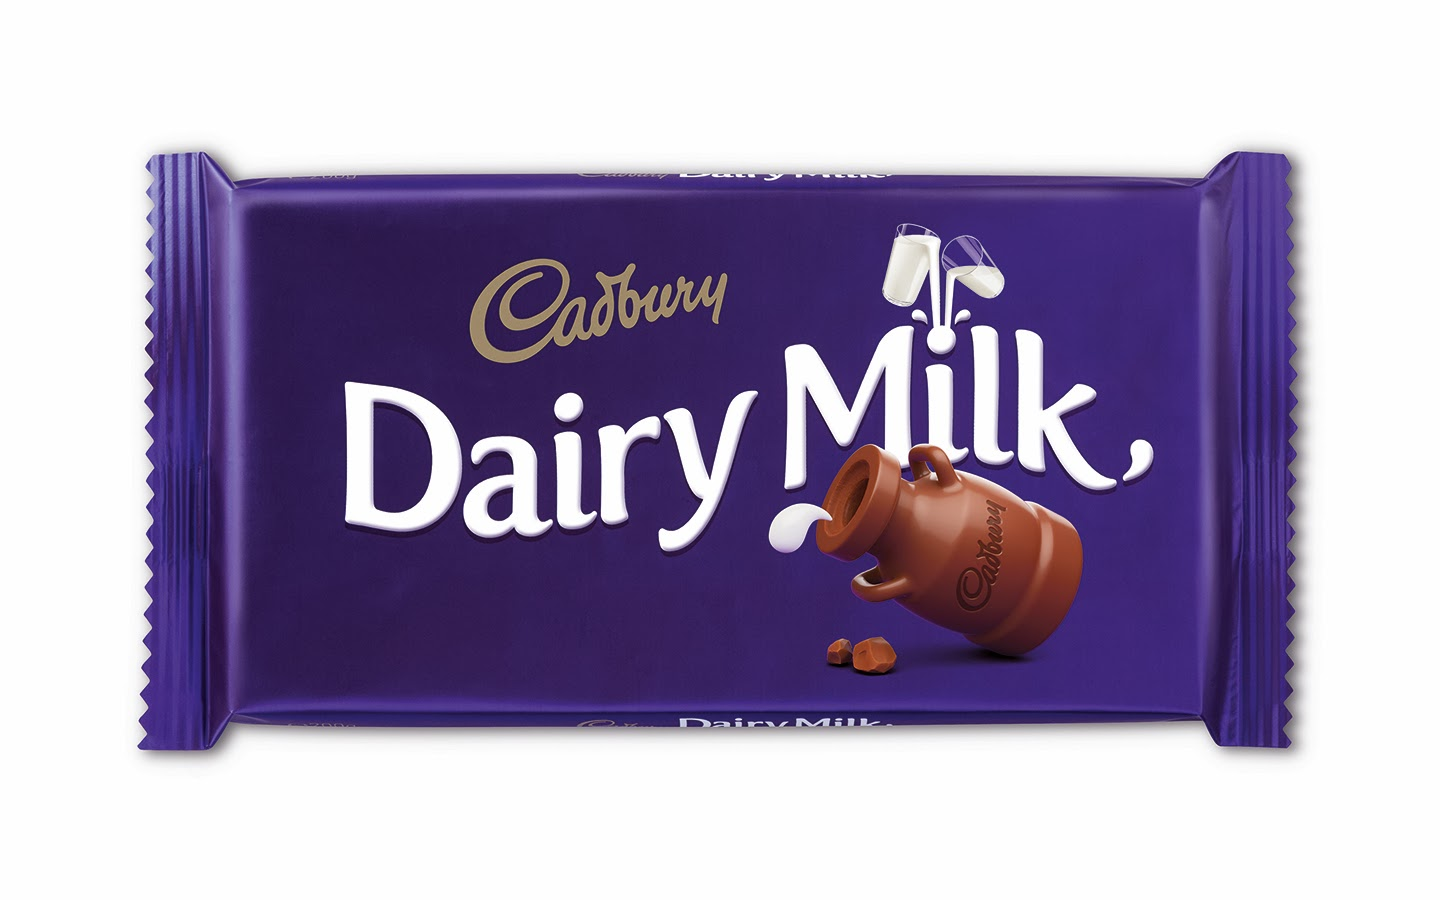 Музыка и видеоролик из рекламы Cadbury Dairy Milk - Office